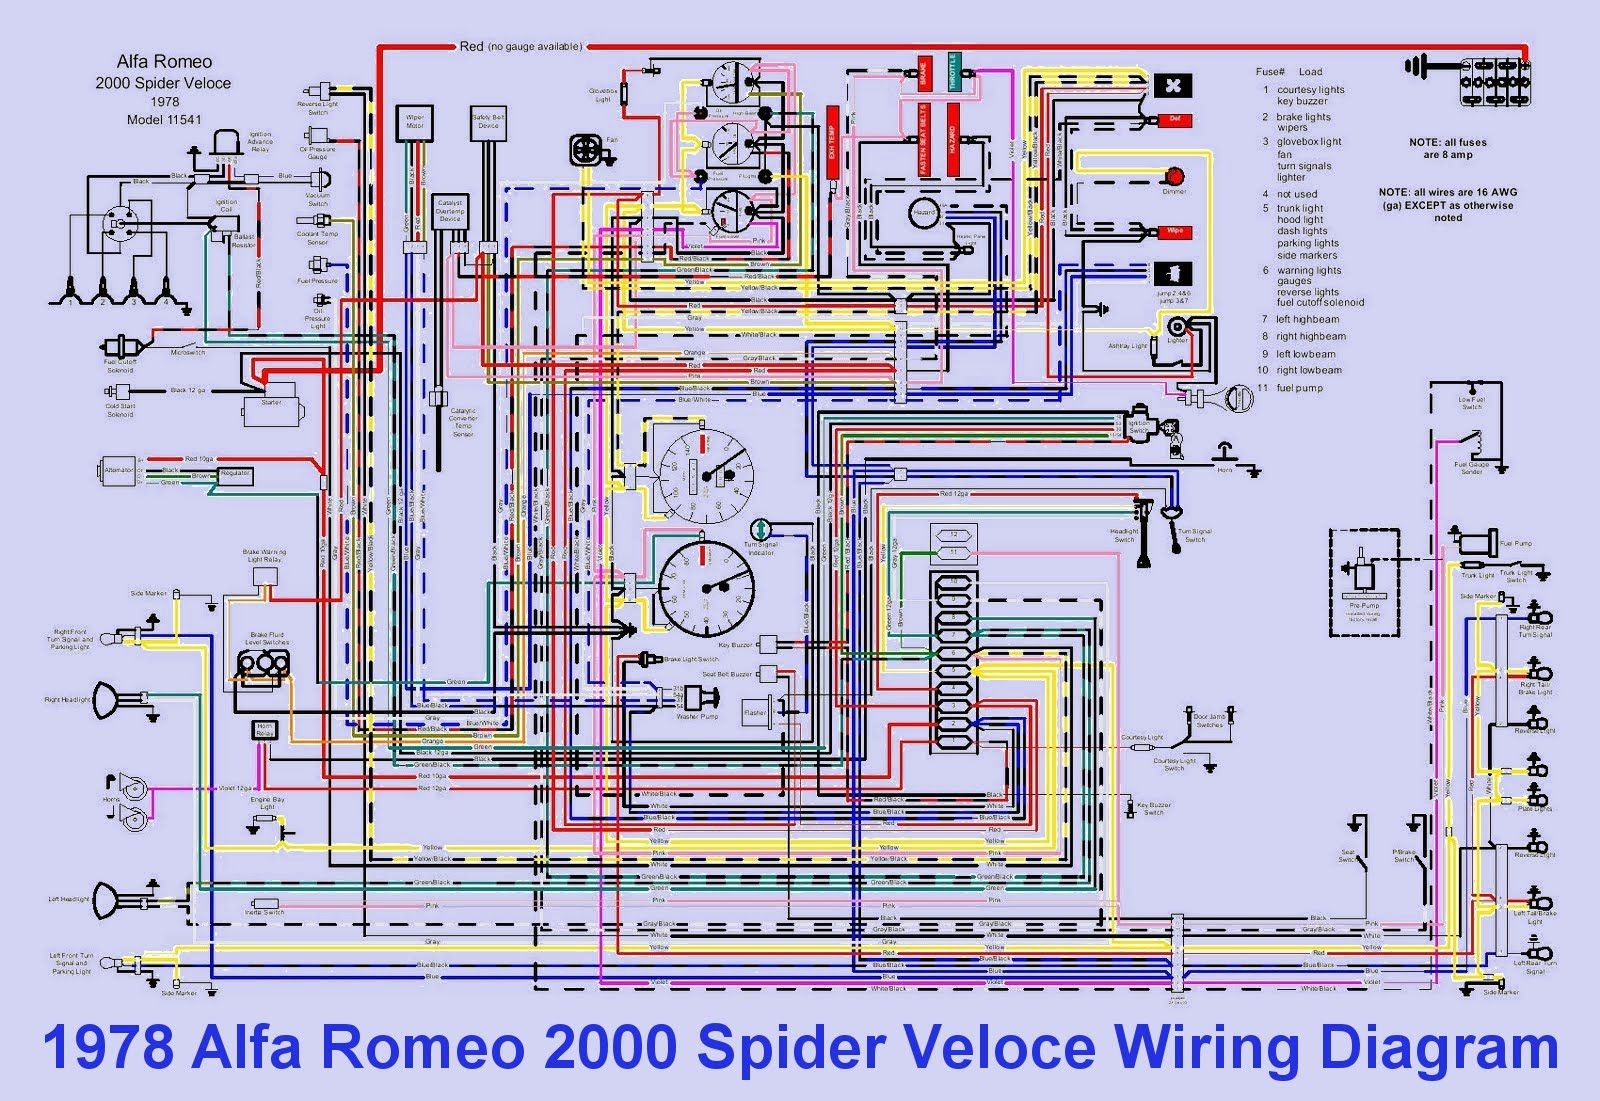 1969 alfa romeo spider wiring diagram car wiring diagrams explained u2022 rh ethermag co wiring diagram for 1987 alfa romeo spider alfa romeo spider 1974 wiring diagram